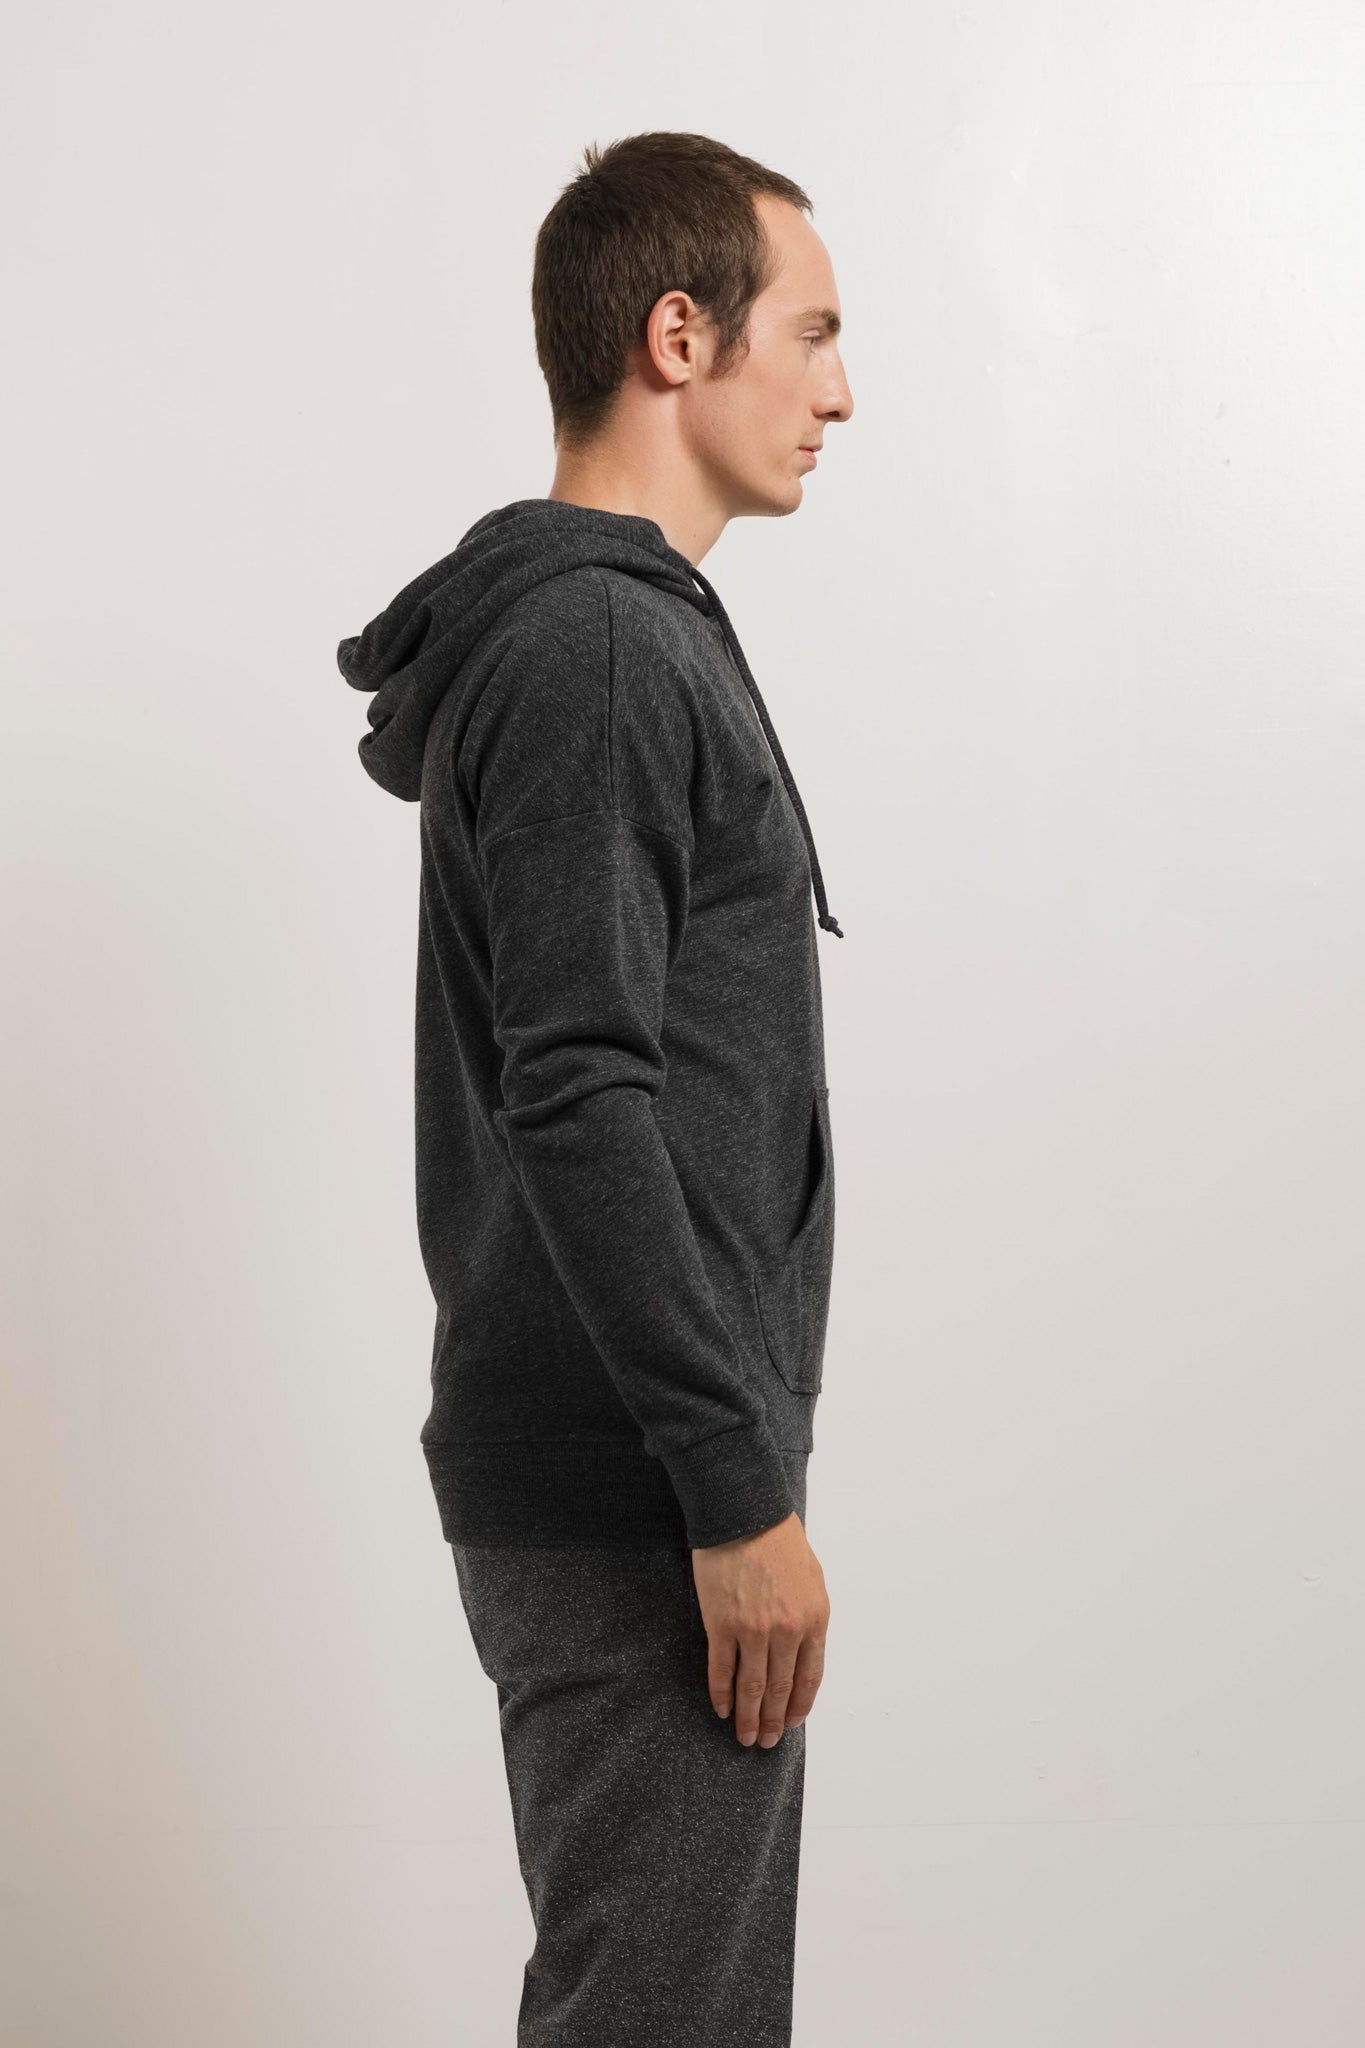 250g French Terry Pullover Hoodie in Melange Black